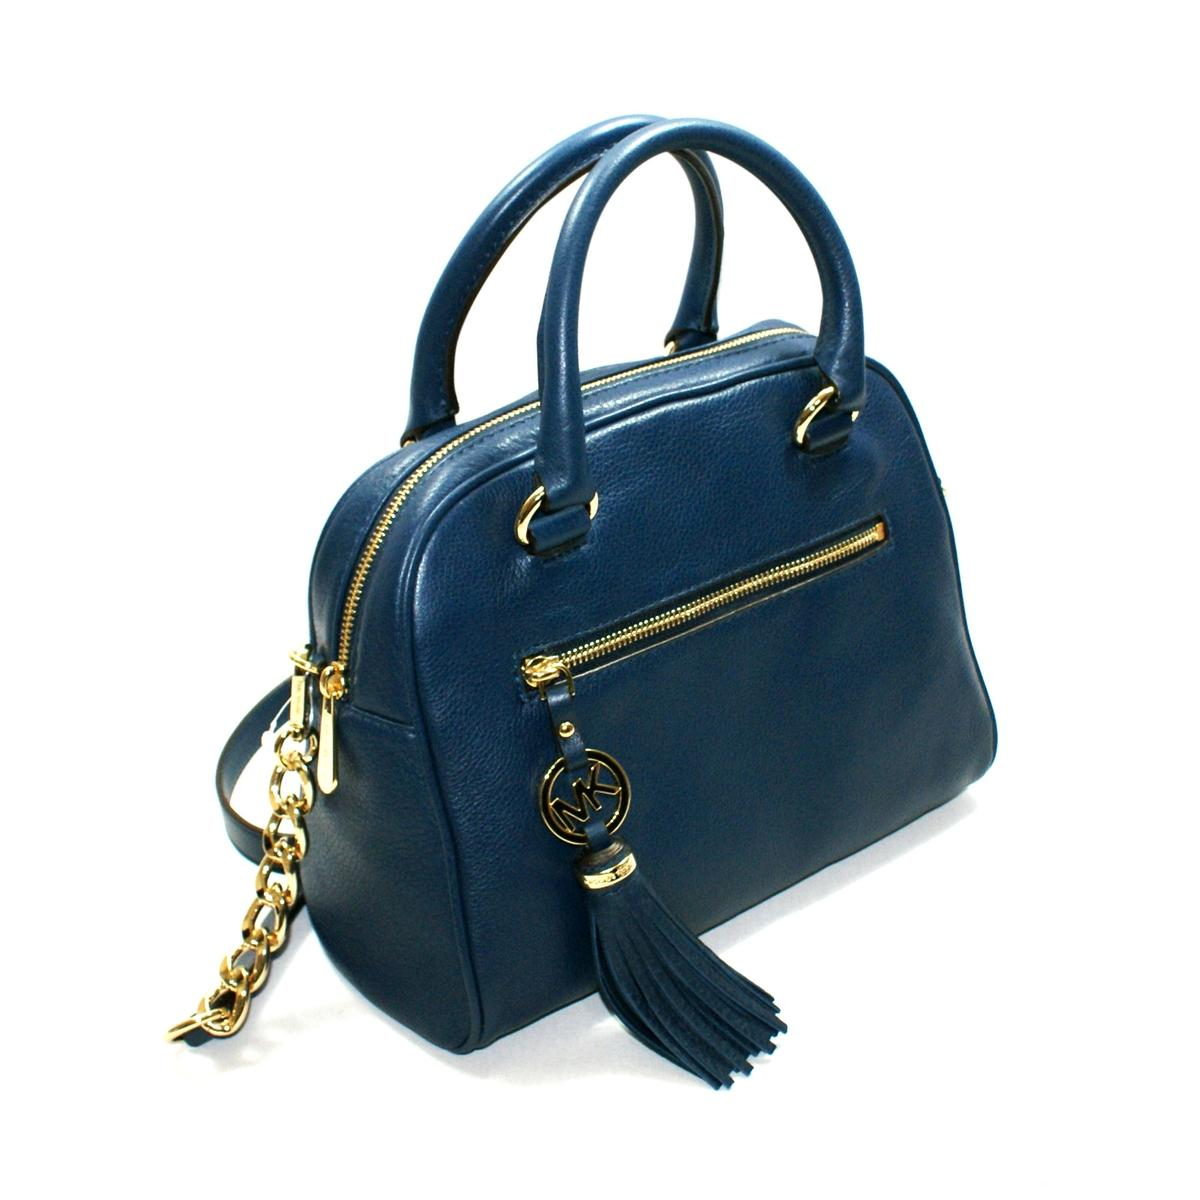 A leather satchel is the ideal bag to complement a classic pairing of jeans and a T-shirt. Plus, with plenty of unique designs and patterns available, you'll have no problems finding one to go with your outfit.